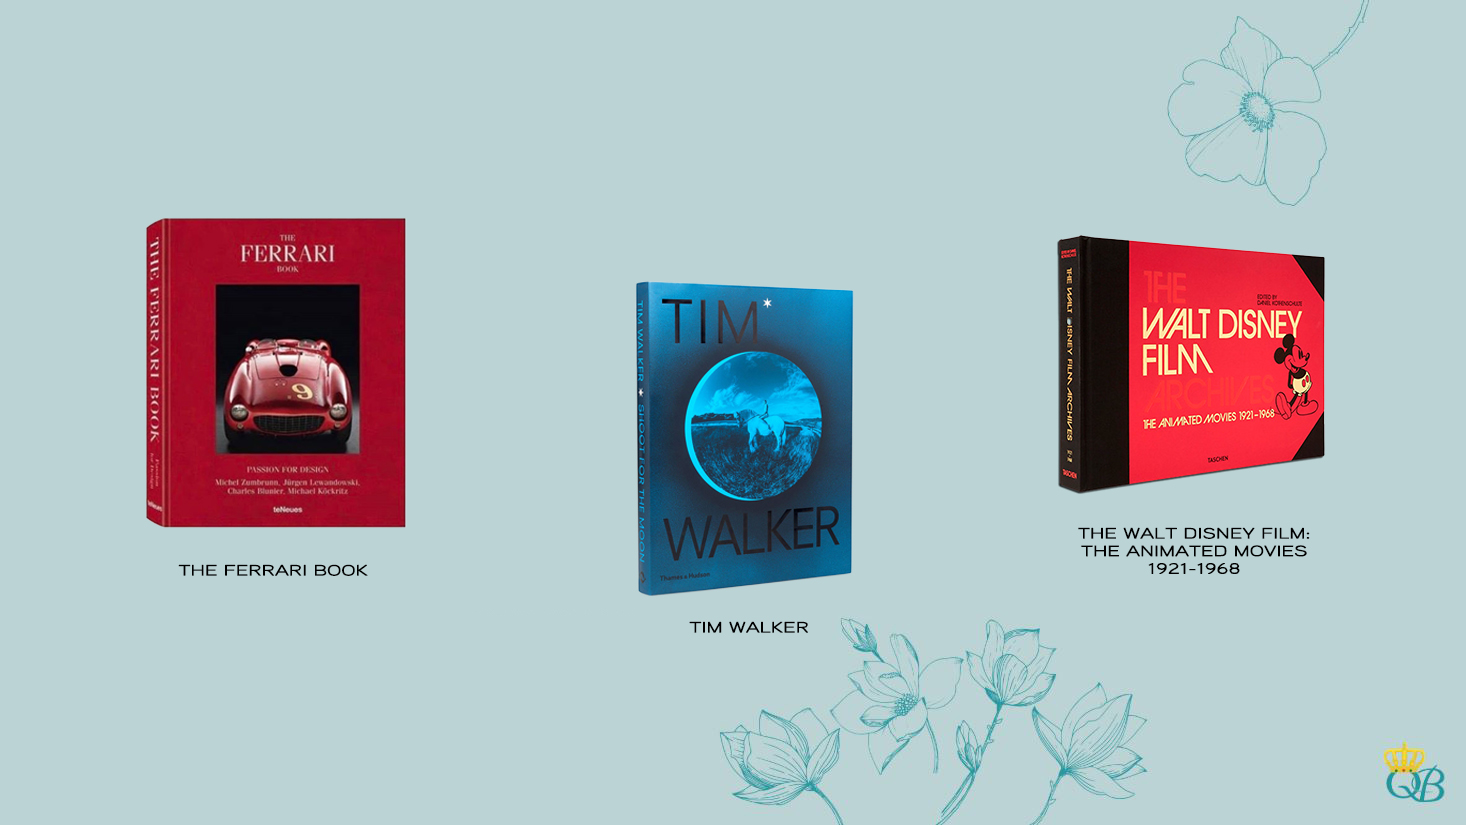 Livros: The Ferrari Book, Tim Walker e The Walt Disney.